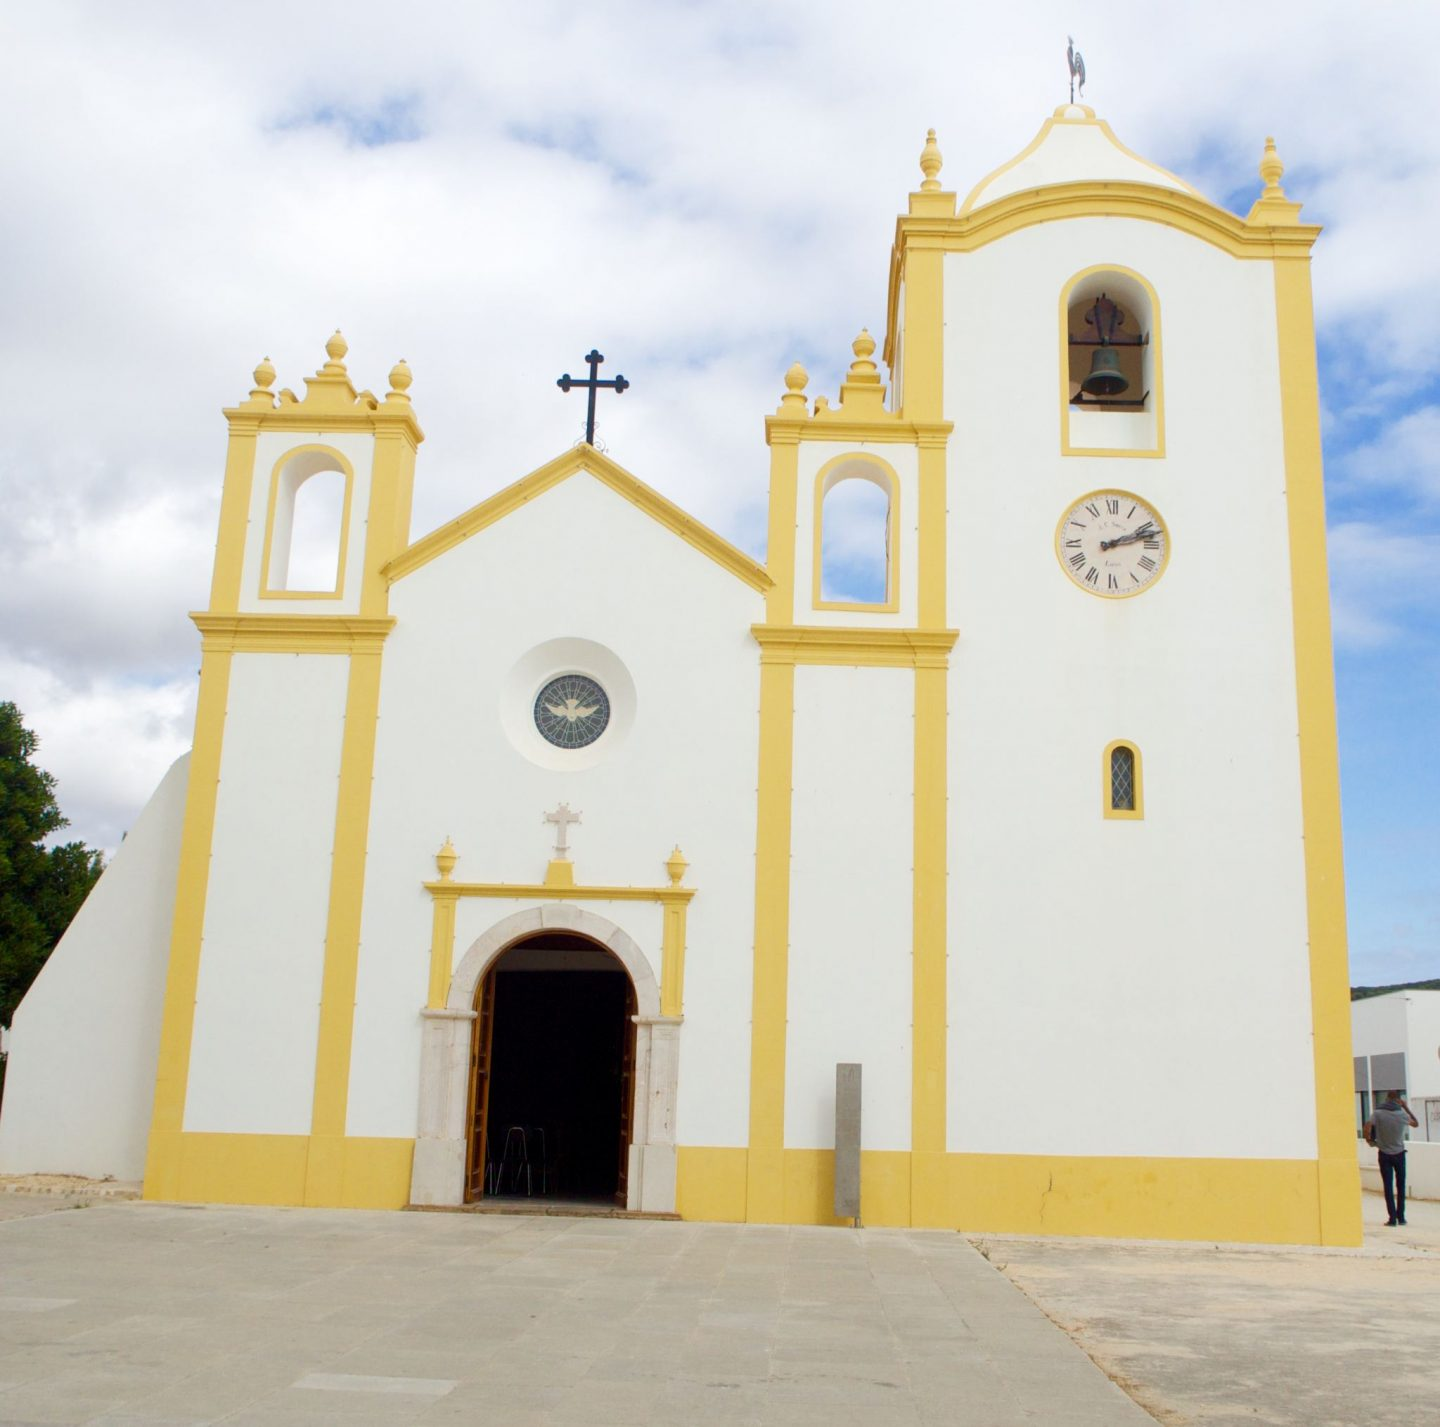 Things to do on a Short Break in Luz, The Algarve